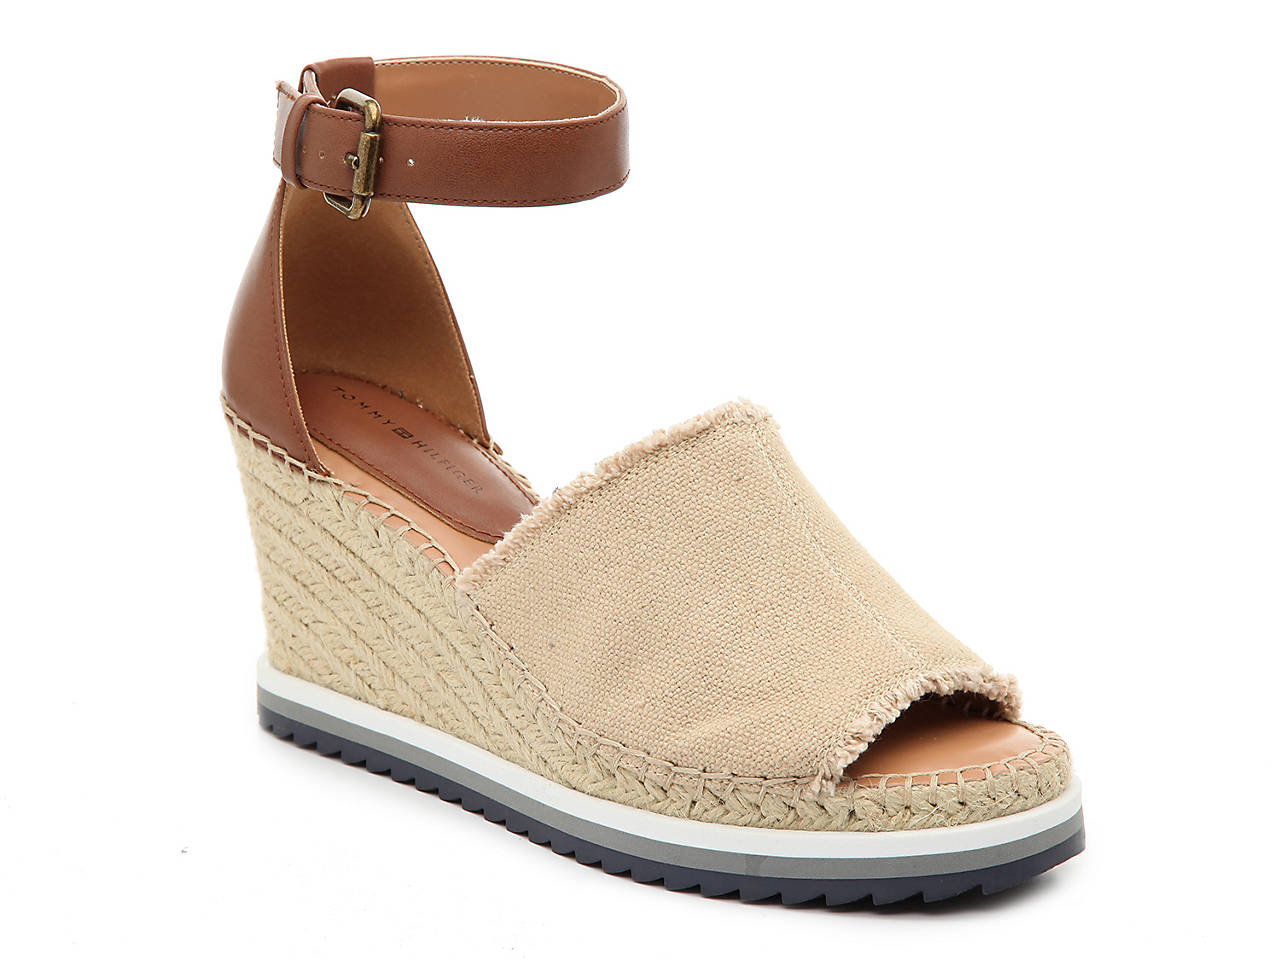 47f0a71be890d1 Tommy Hilfiger Yavino Espadrille Wedge Sandal Women s Shoes